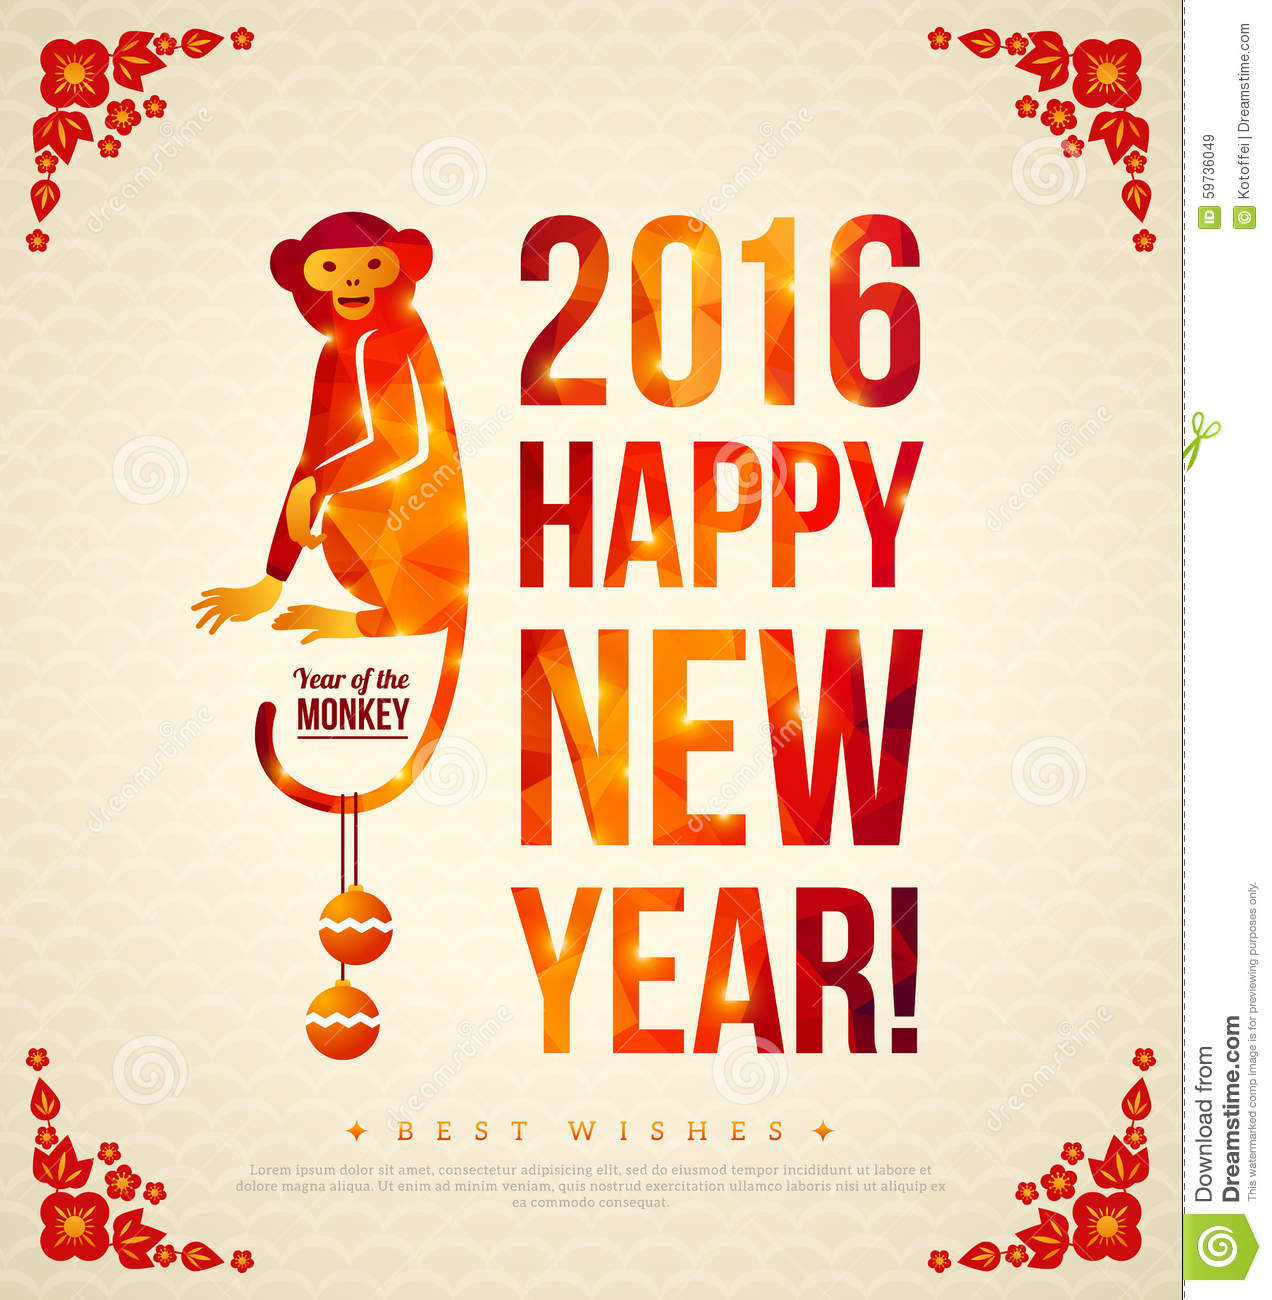 2016 Happy Chinese New Year Greeting Card With Monkey Stock